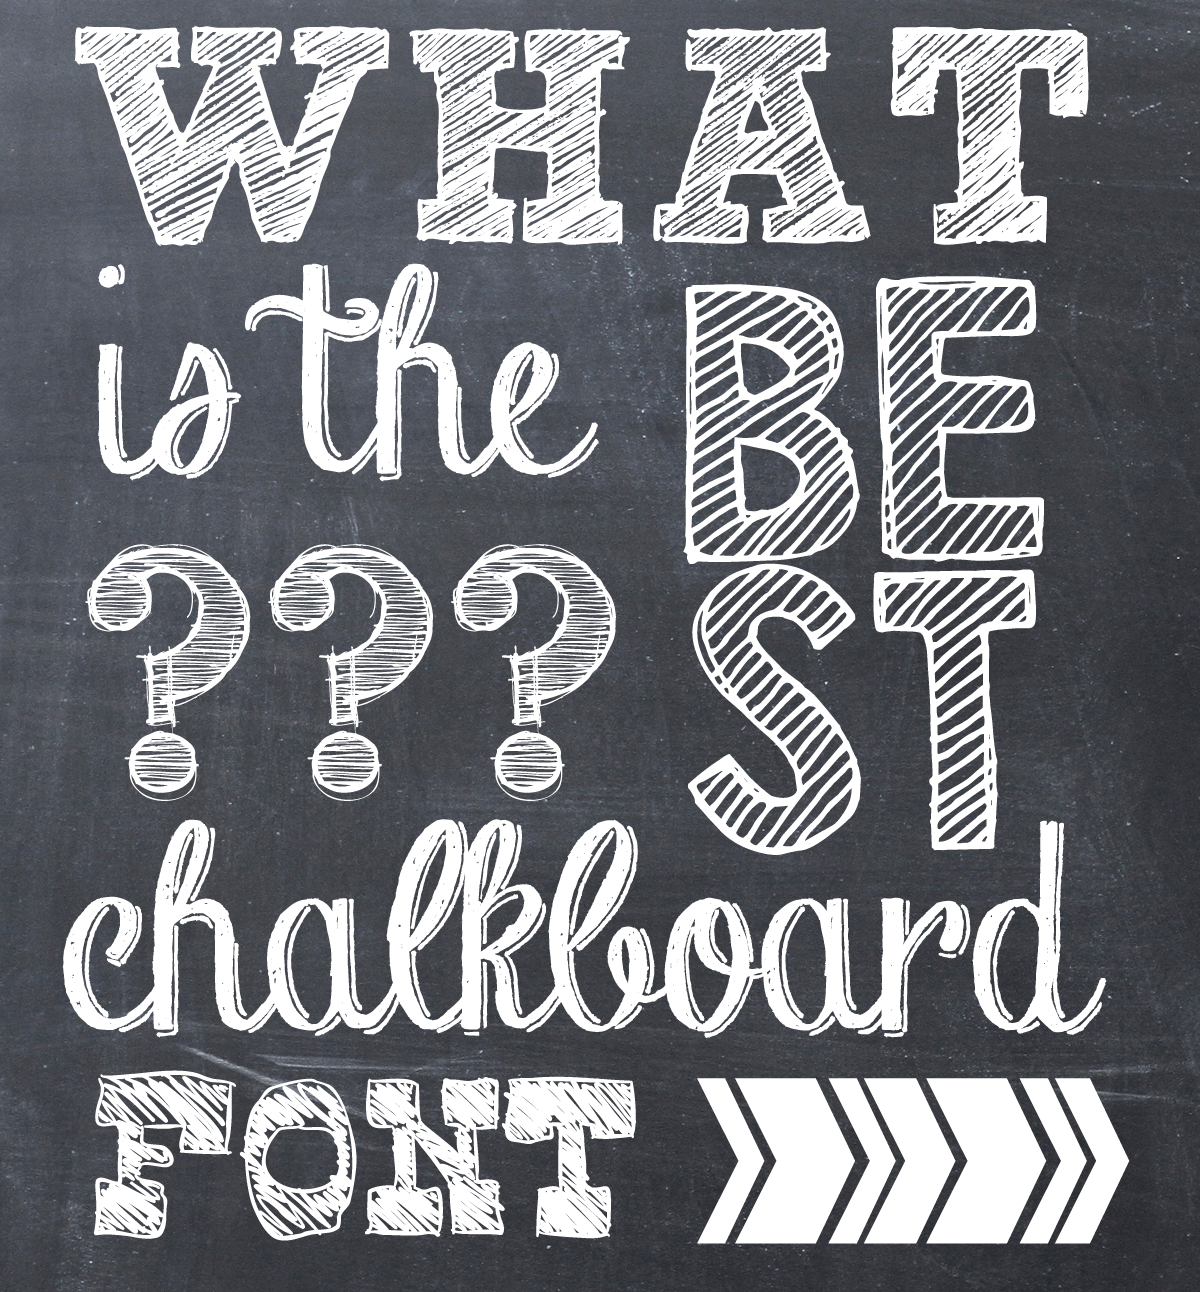 Similiar Chalk Block Font Keywords